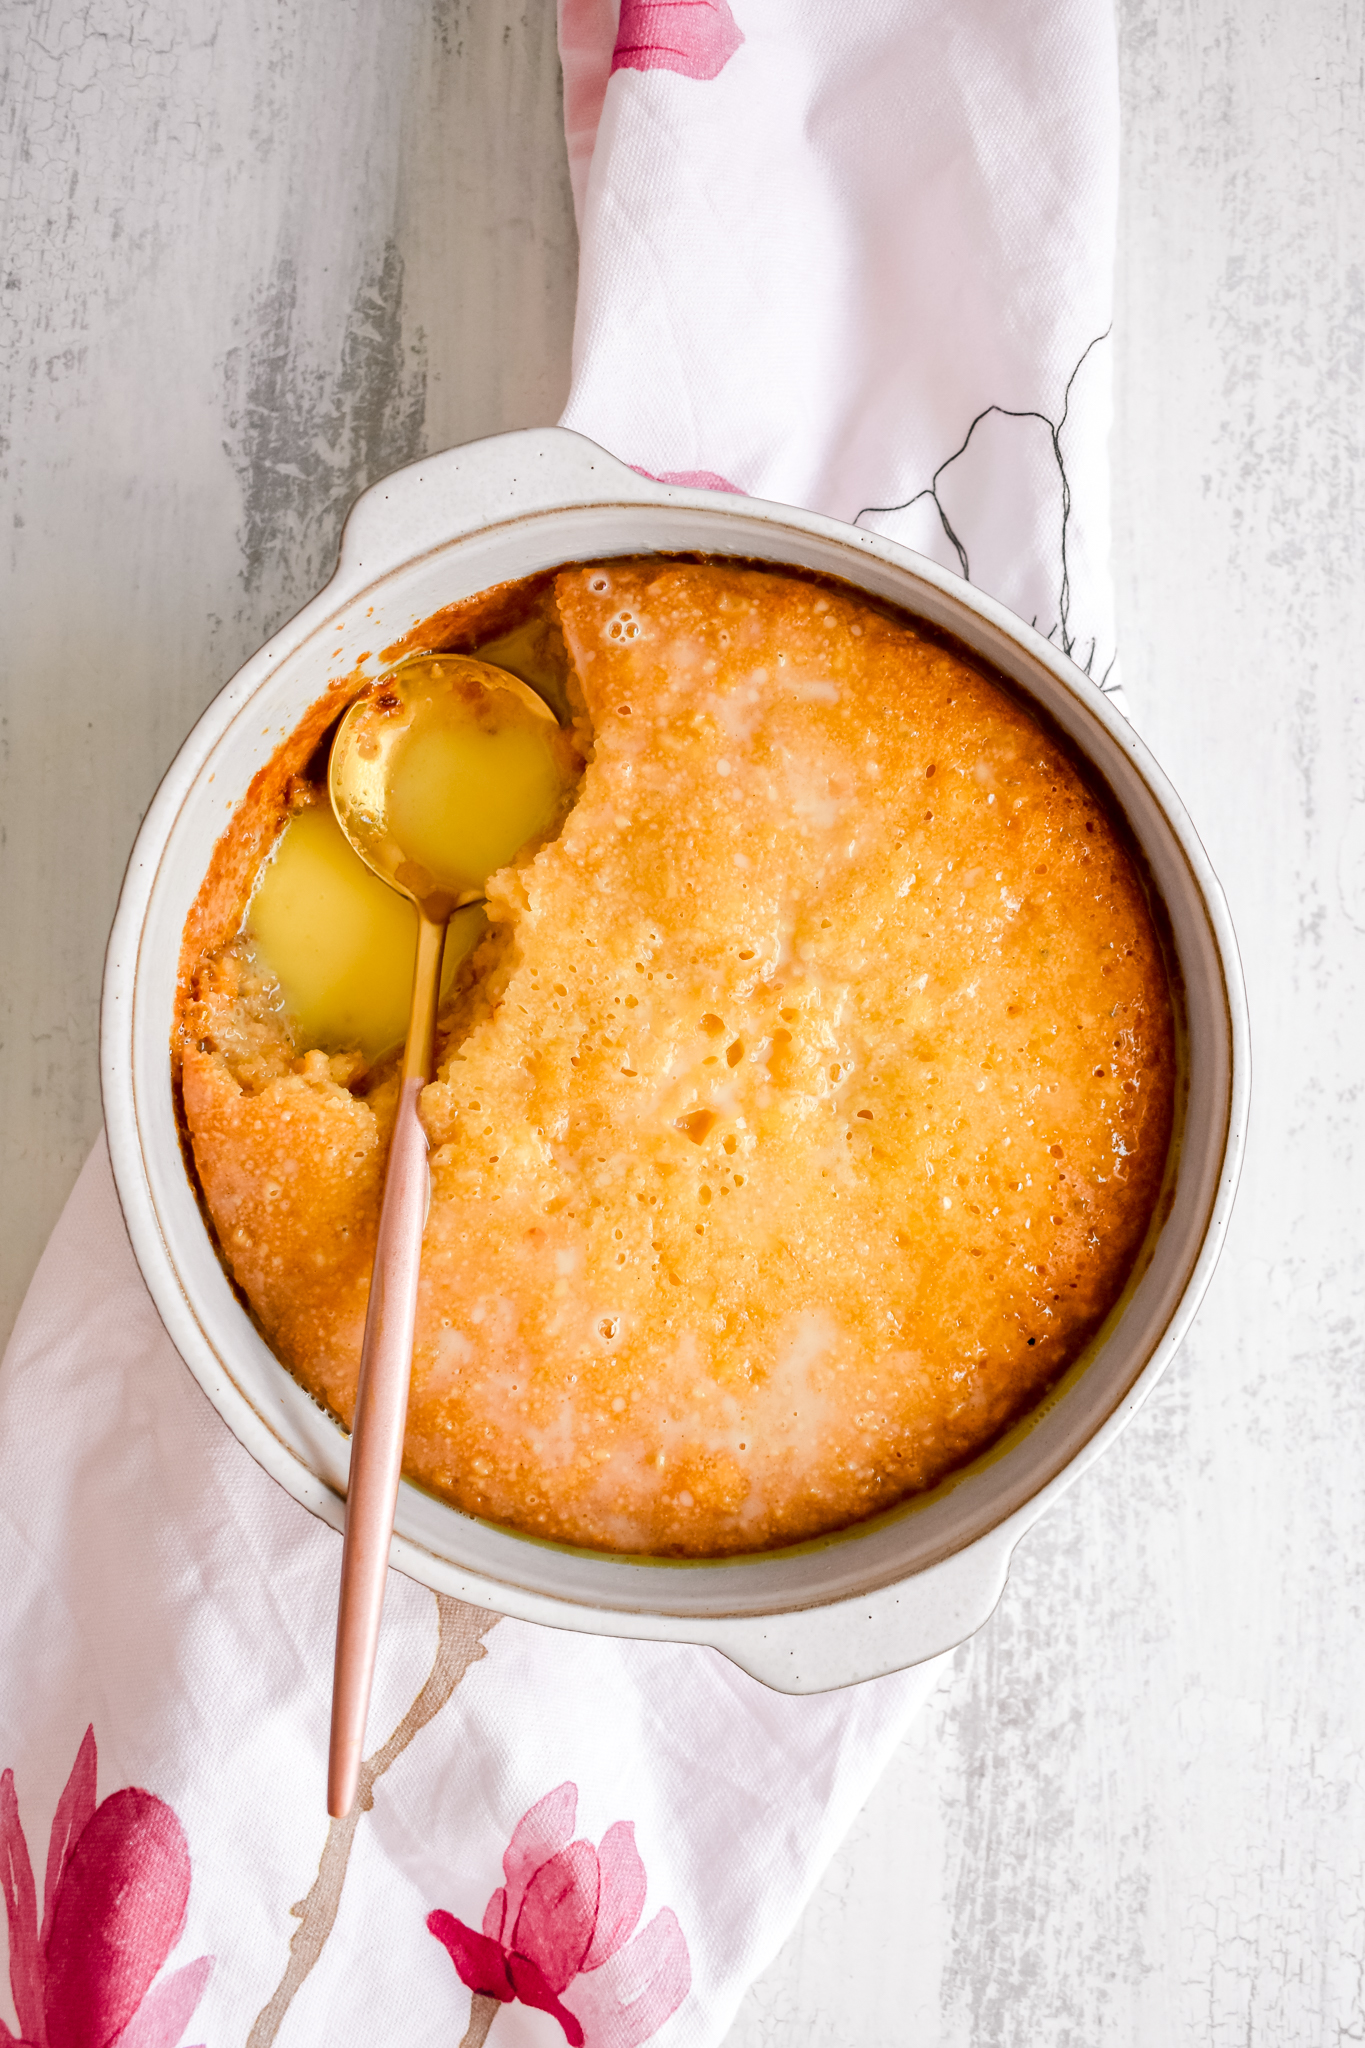 Delicious Gluten-Free Malva Pudding